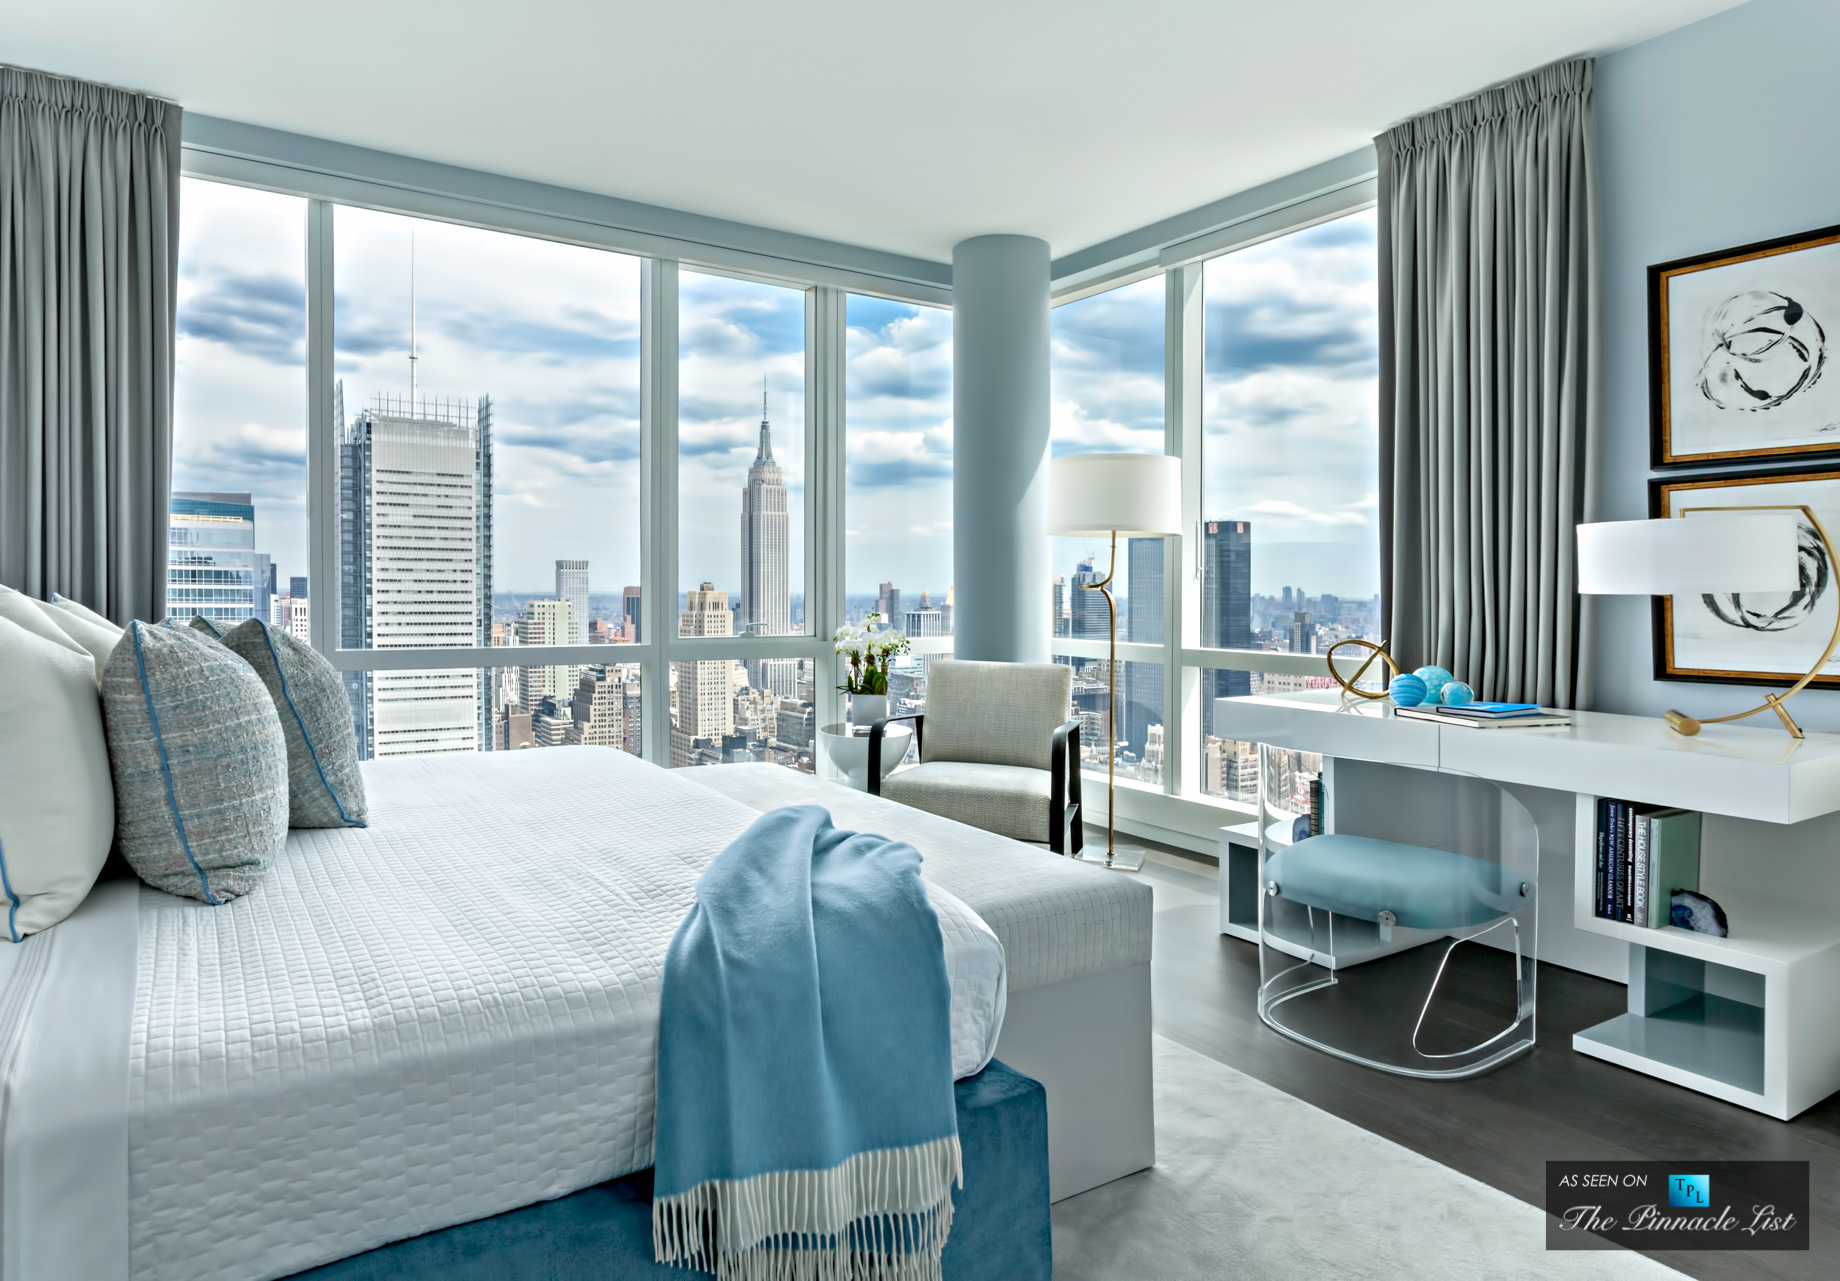 Manhattan View - Elevated NYC Living at Midtown's Hottest New Condo Development